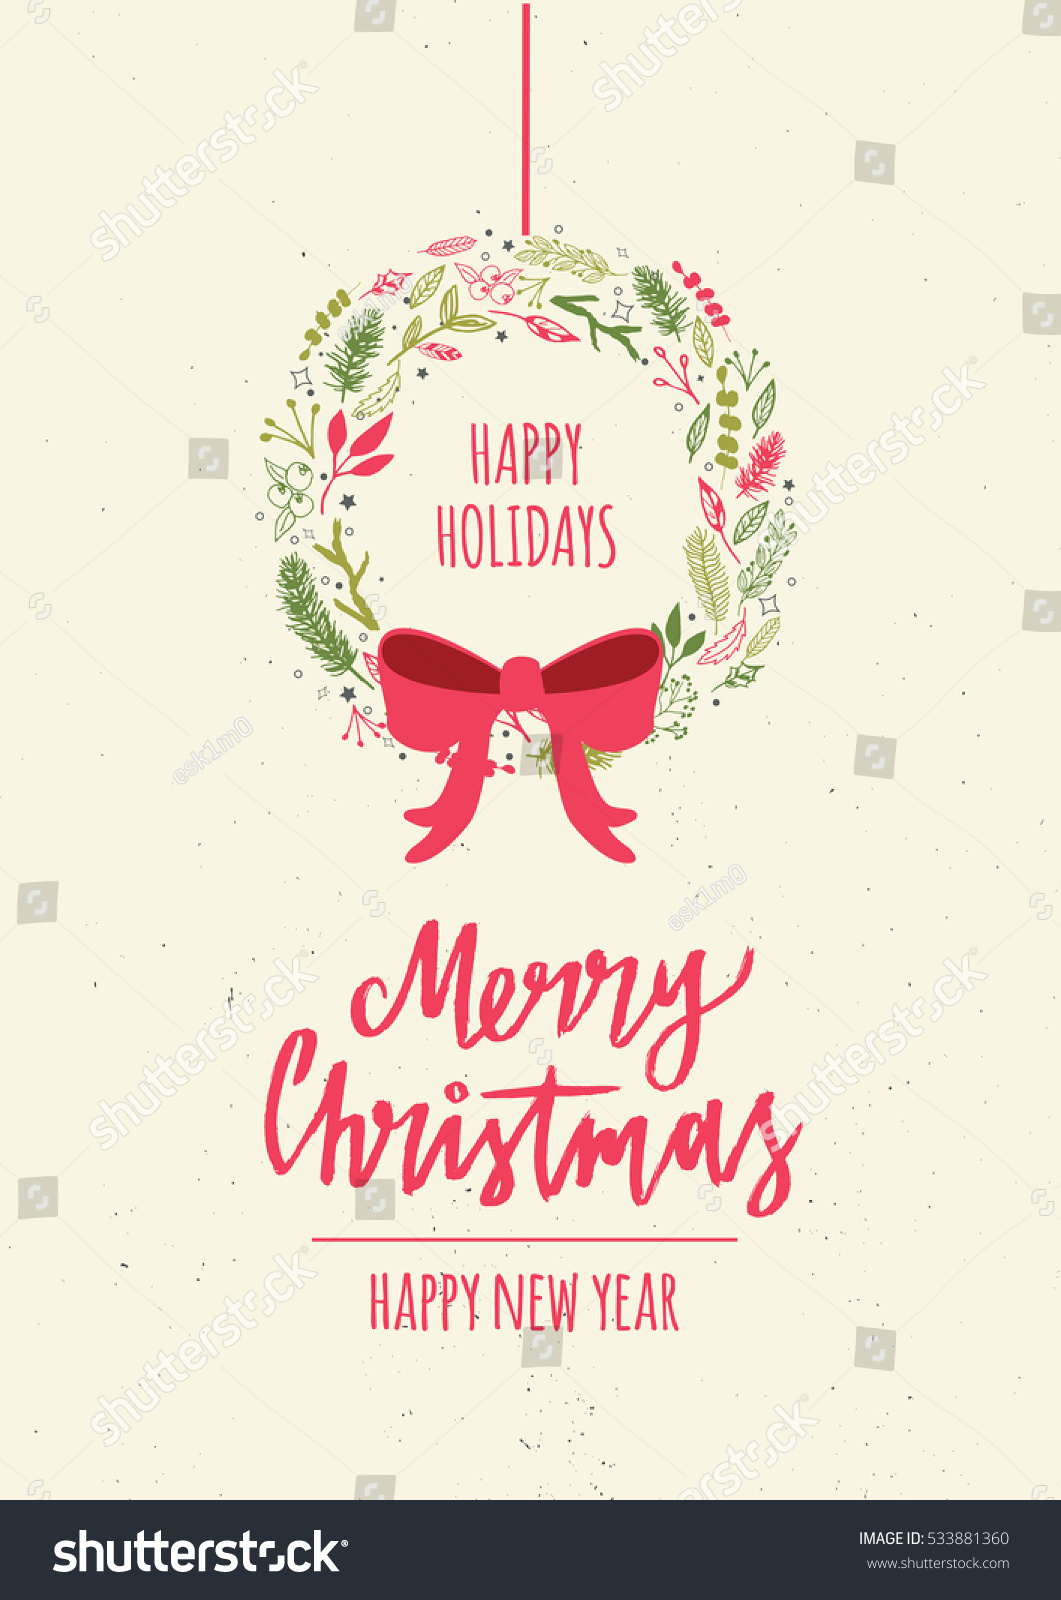 Merry Christmas Card Lettering Christmas Wreath Stock Vector ...